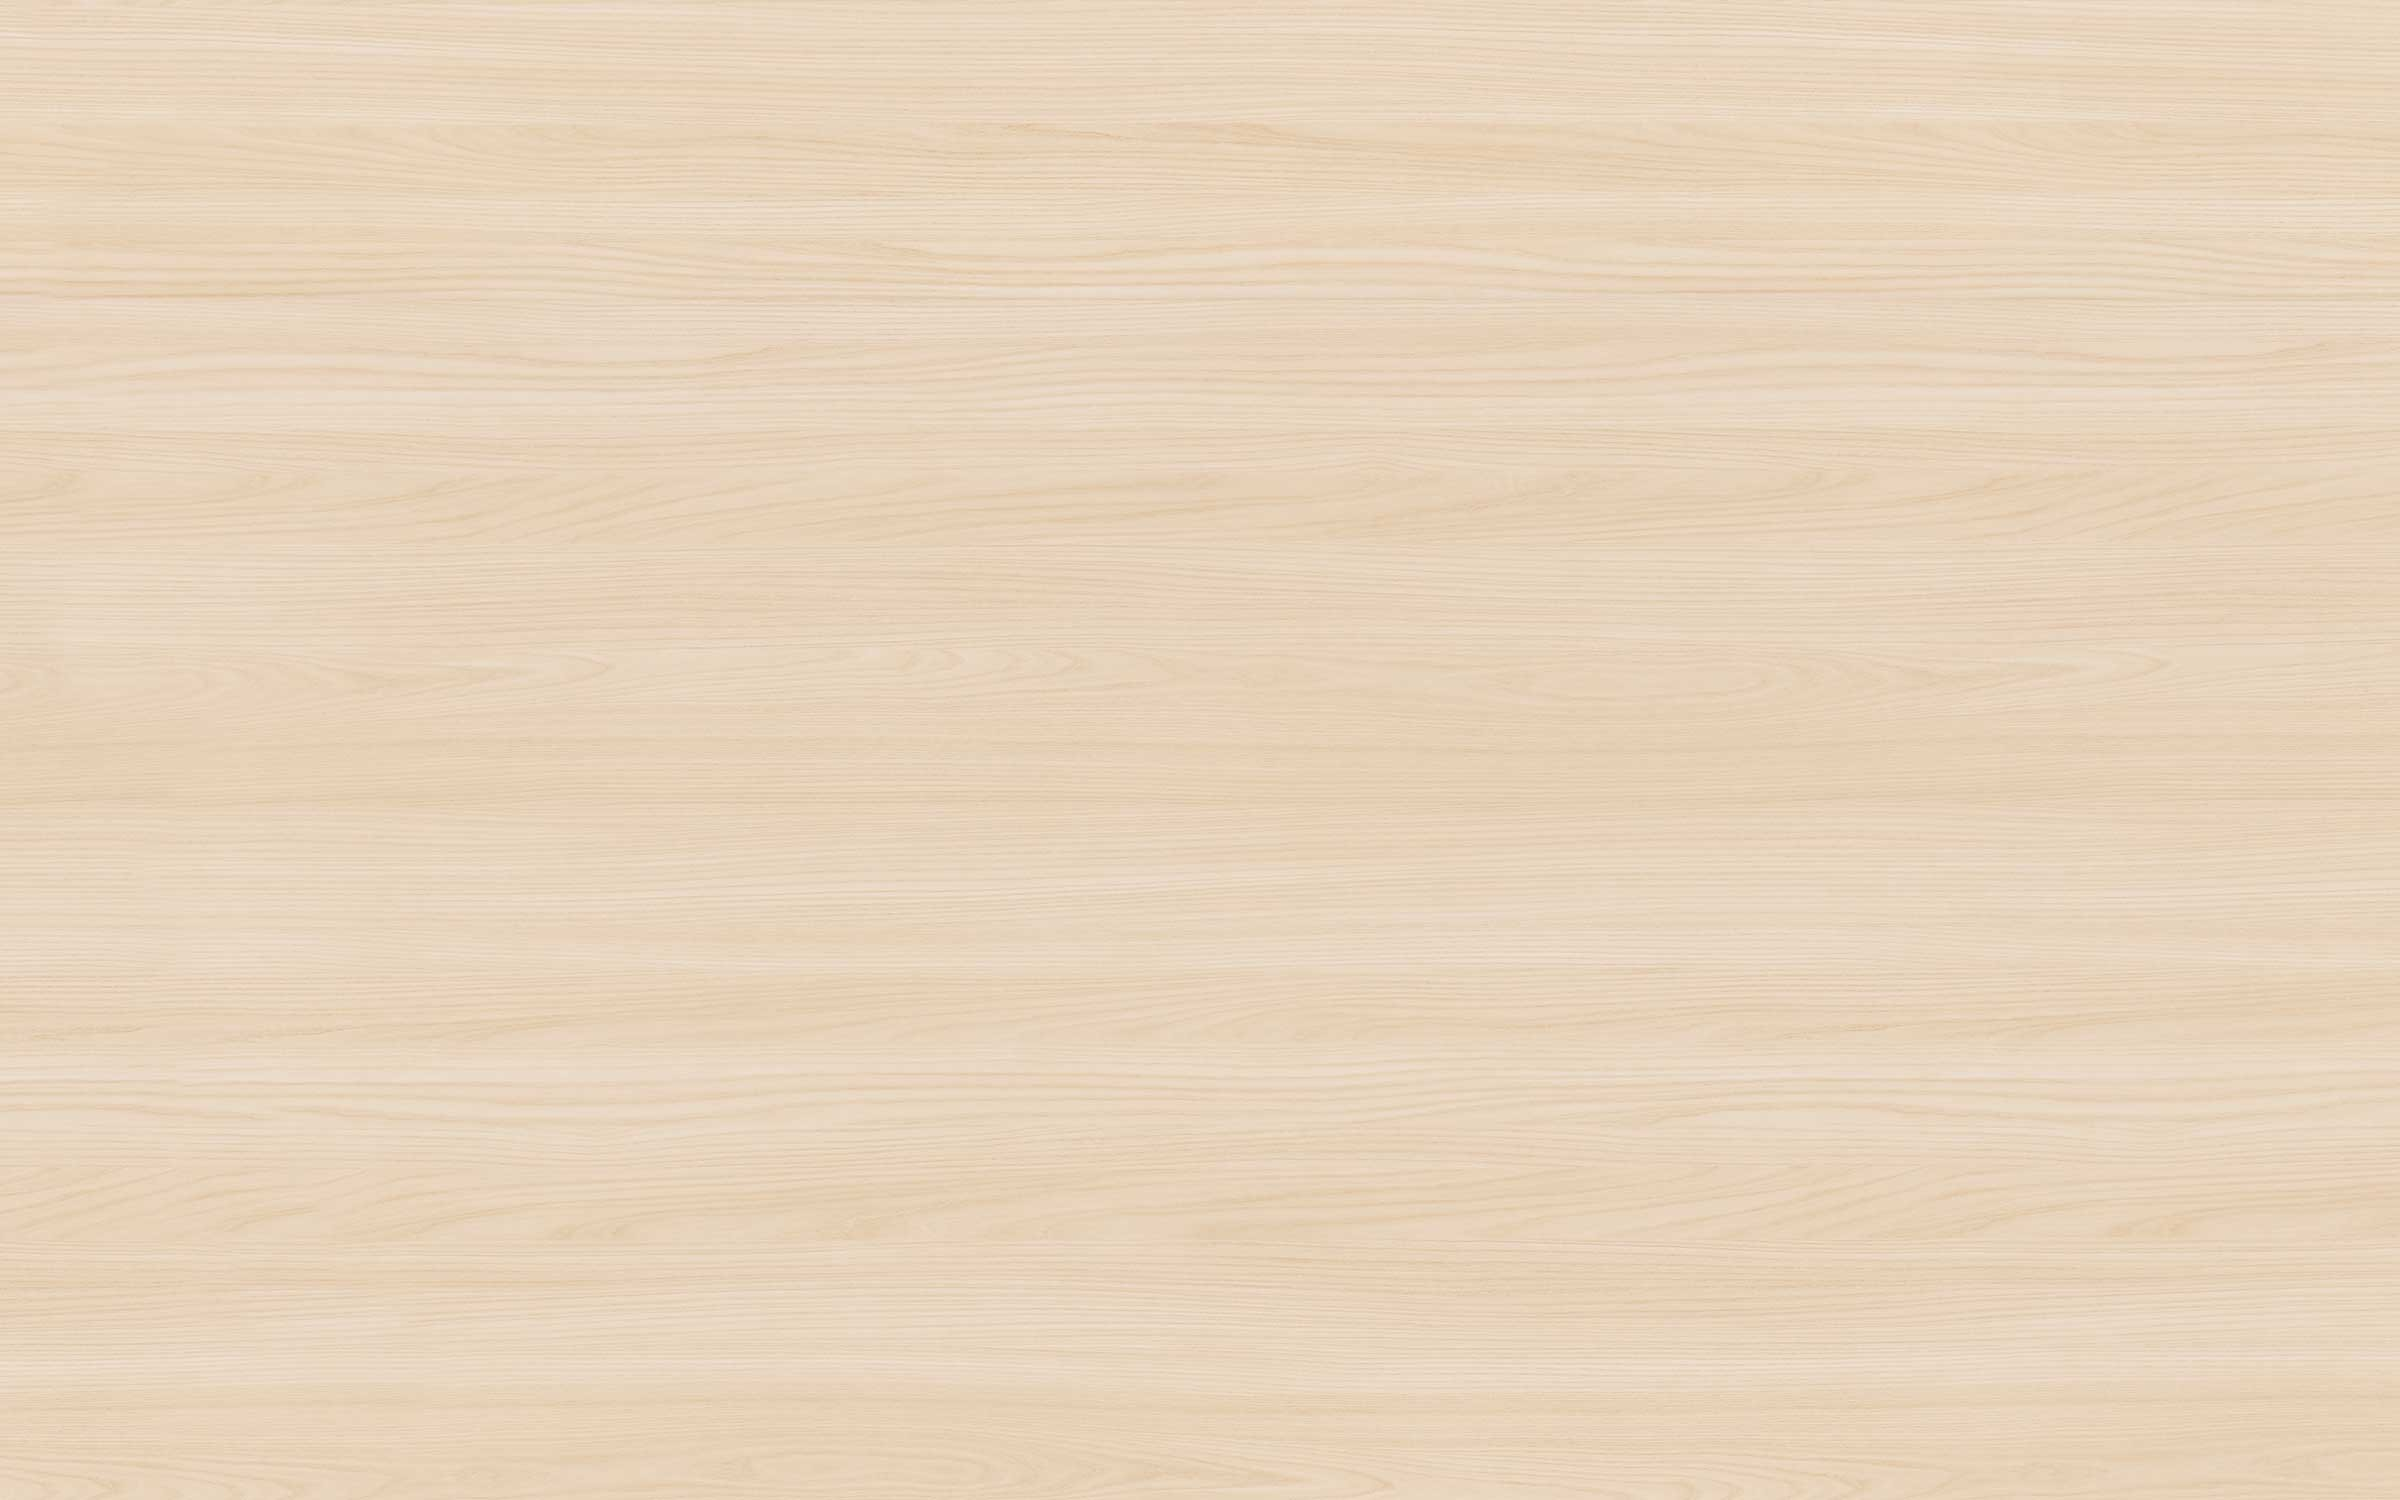 Laminate Provides Light Wood Grain Finish Wood Industry